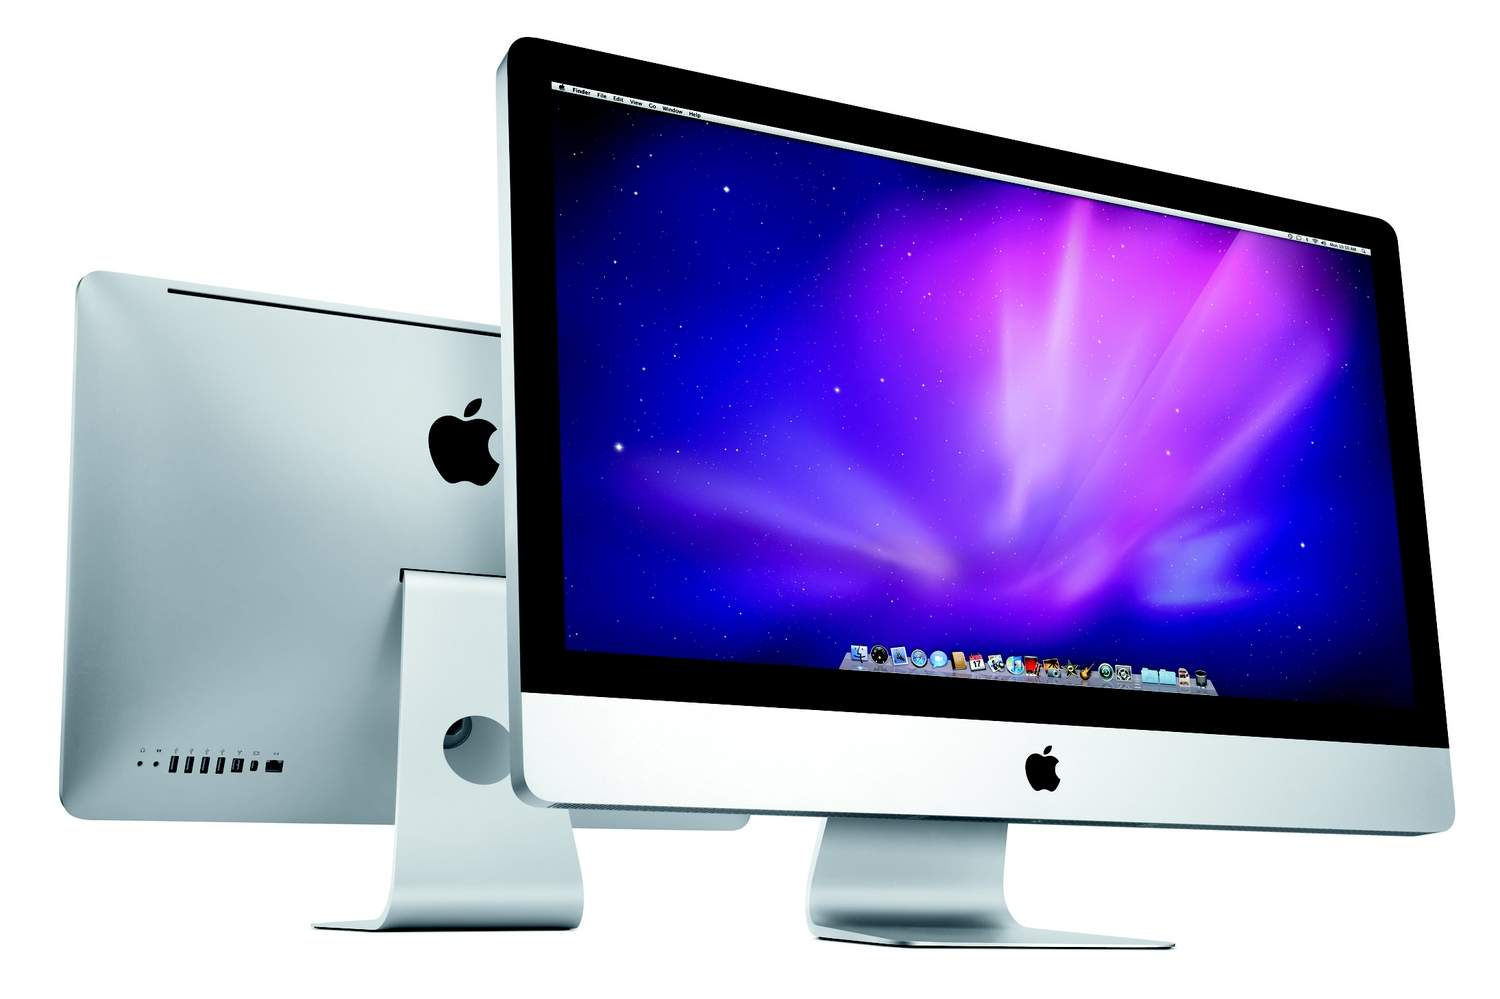 The 2009 unibody iMac proved a watershed design for Jony Ive and Apple.